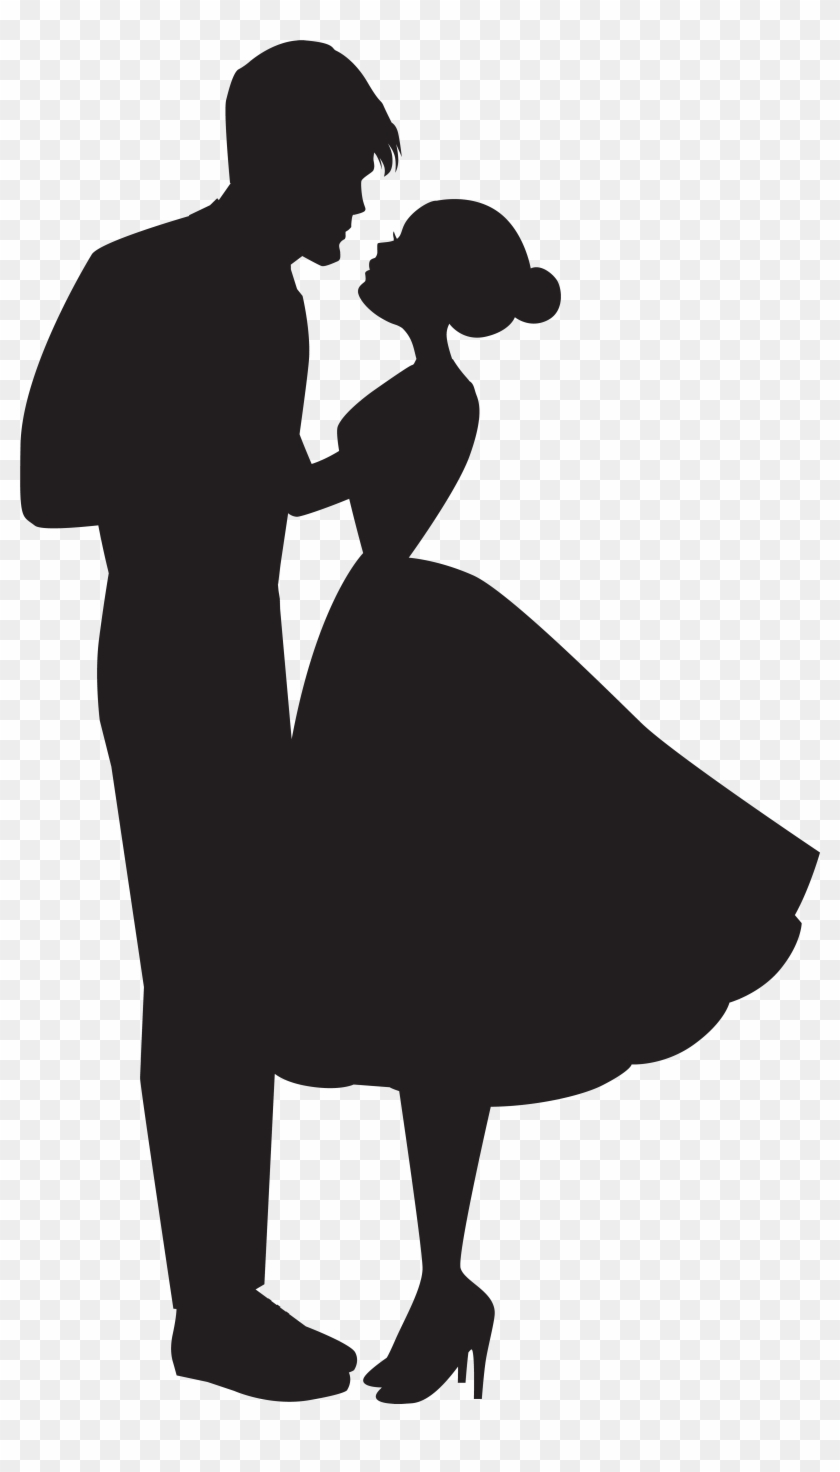 Silhouette Clipart Love - Couple Silhouette Png #10644